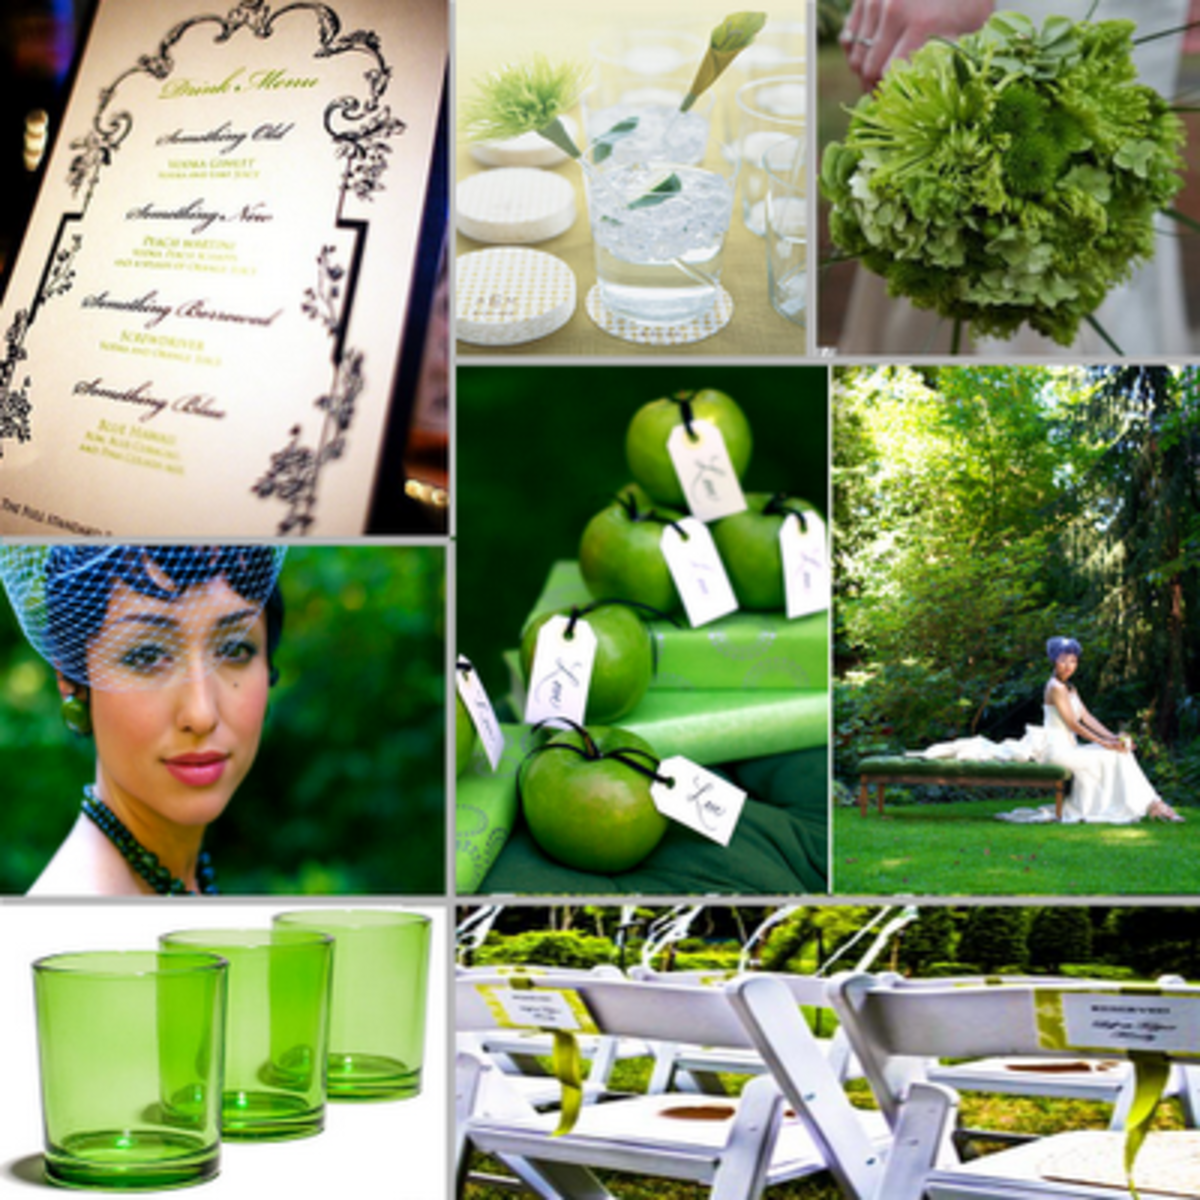 Lot of greenery (tree, grass, shrubs and green flowers bouquets are a natural choice to incorporate into a lime green and white themed wedding receptions. The wedding photos will be gorgeous! Photo credit: Tried and True Weddings via 3bp.blogspot.com